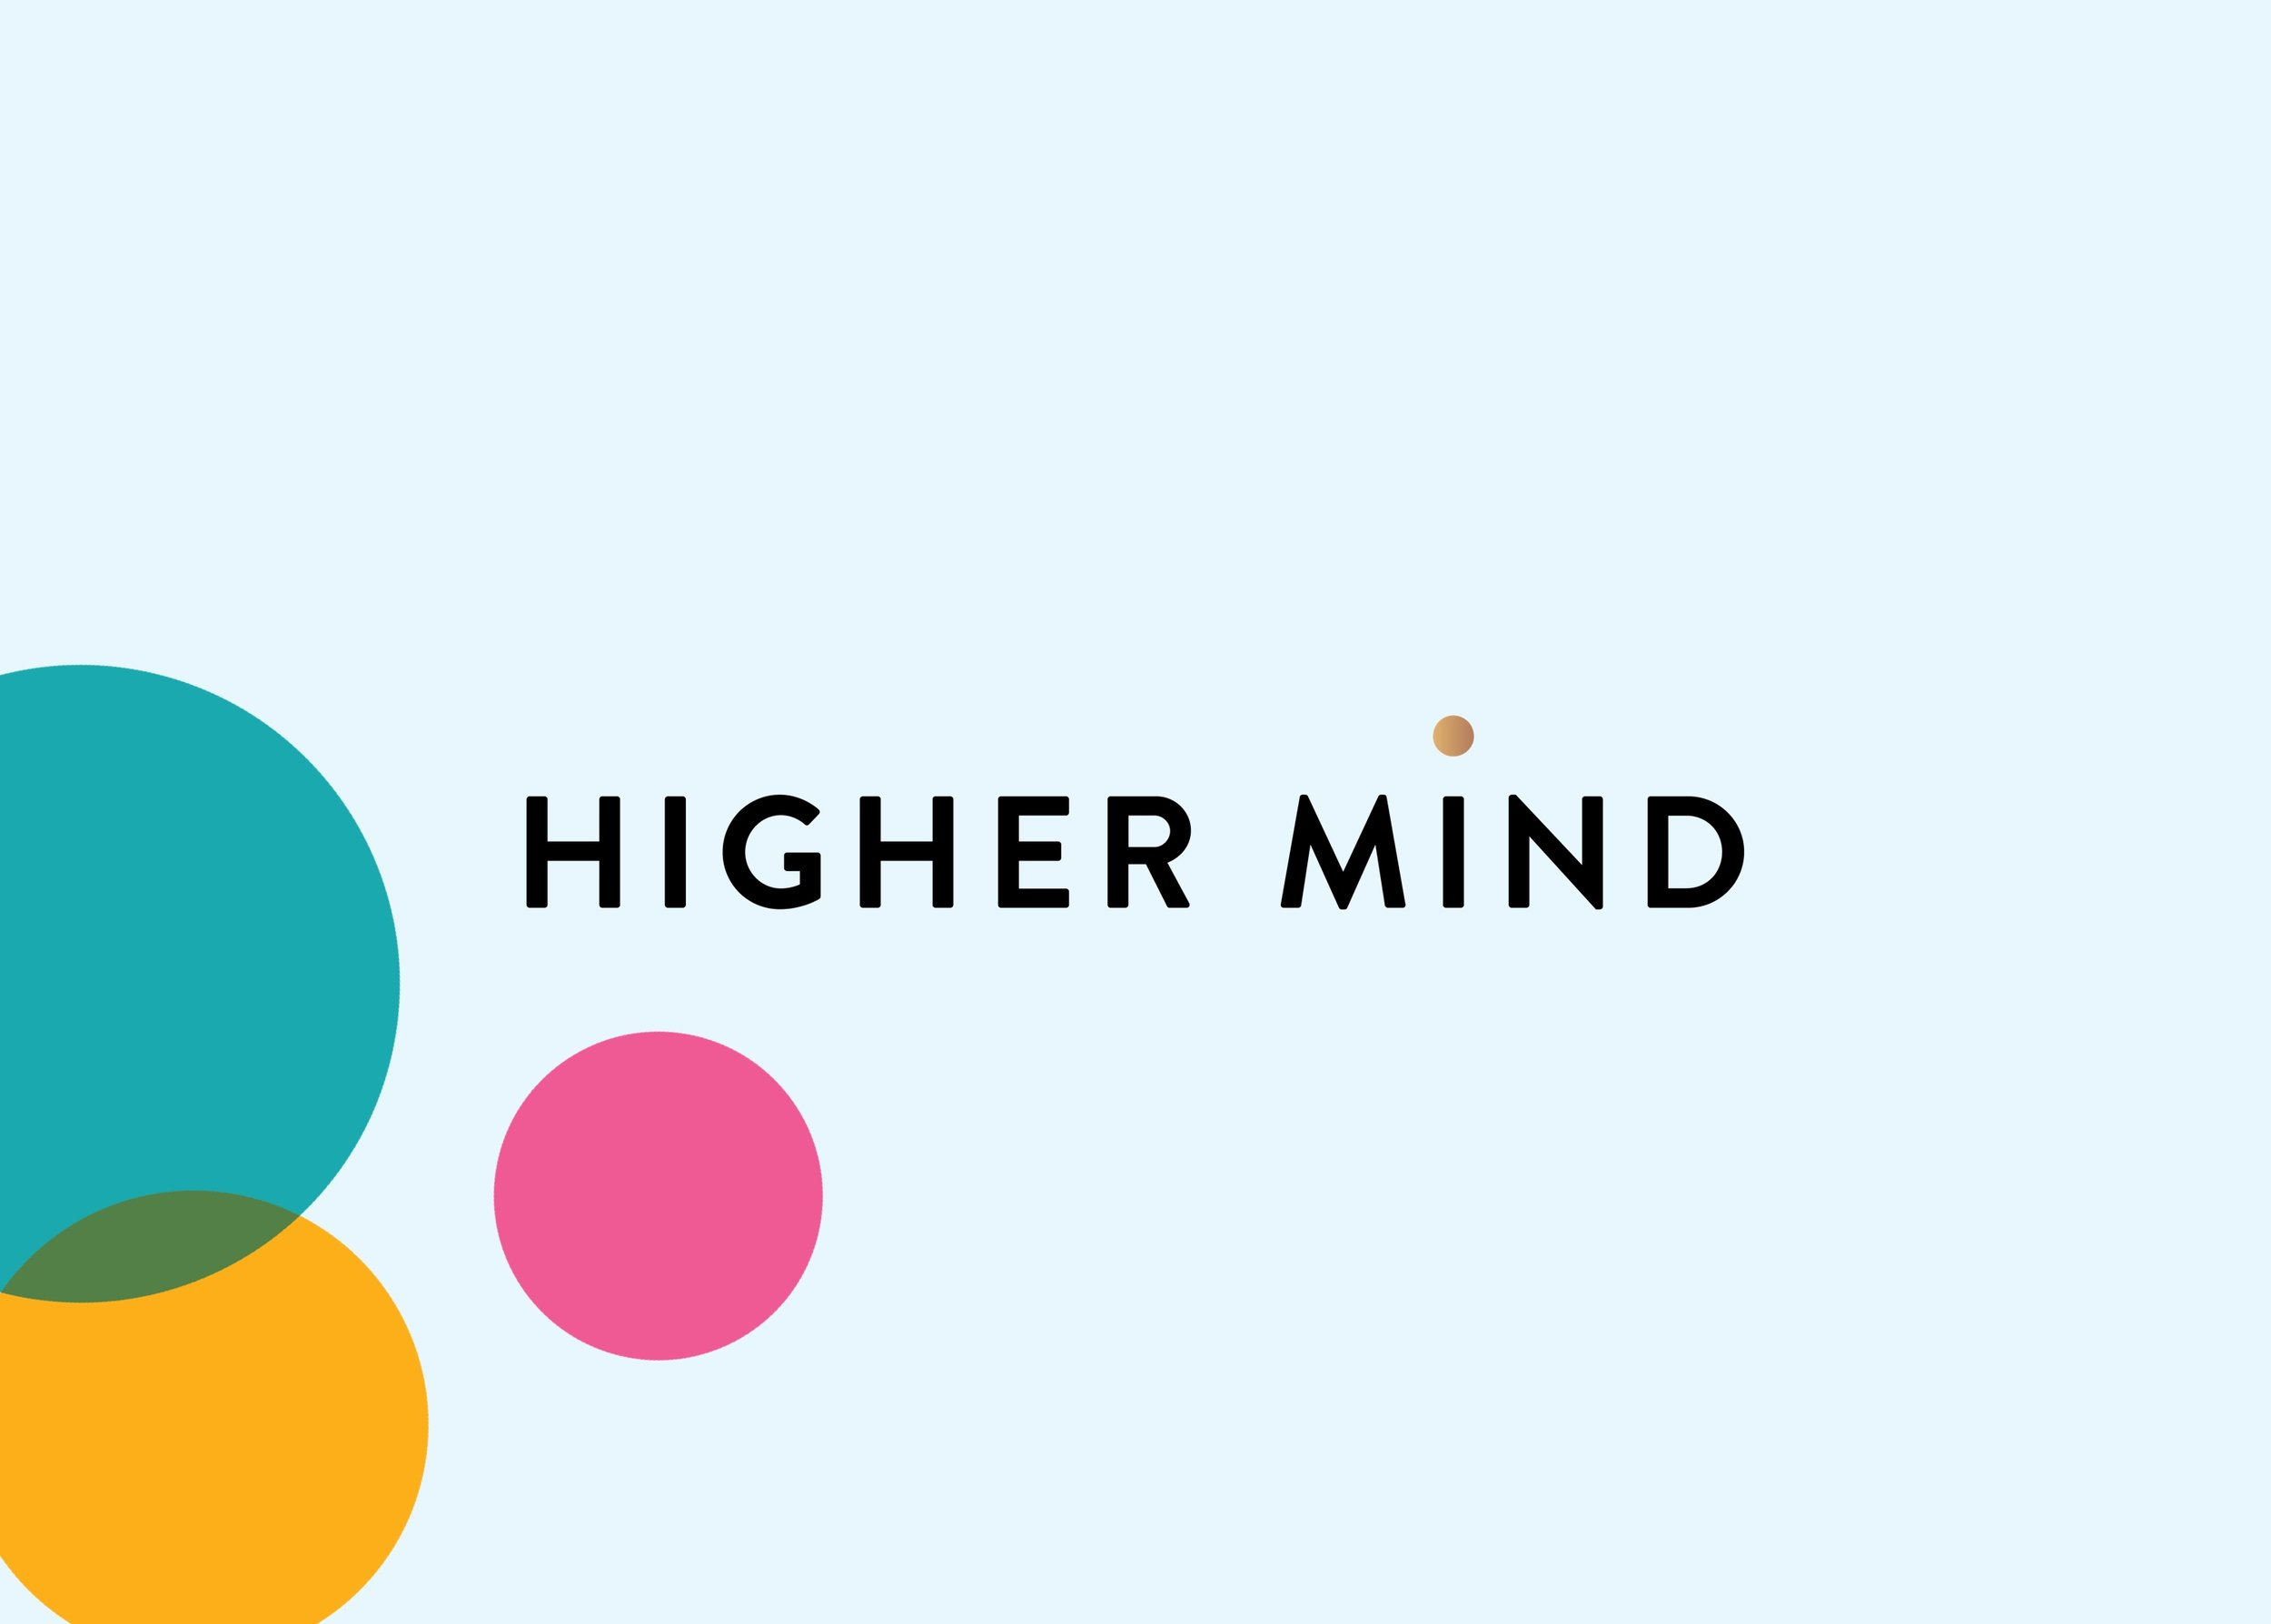 Higher Mind 3@2x.jpg